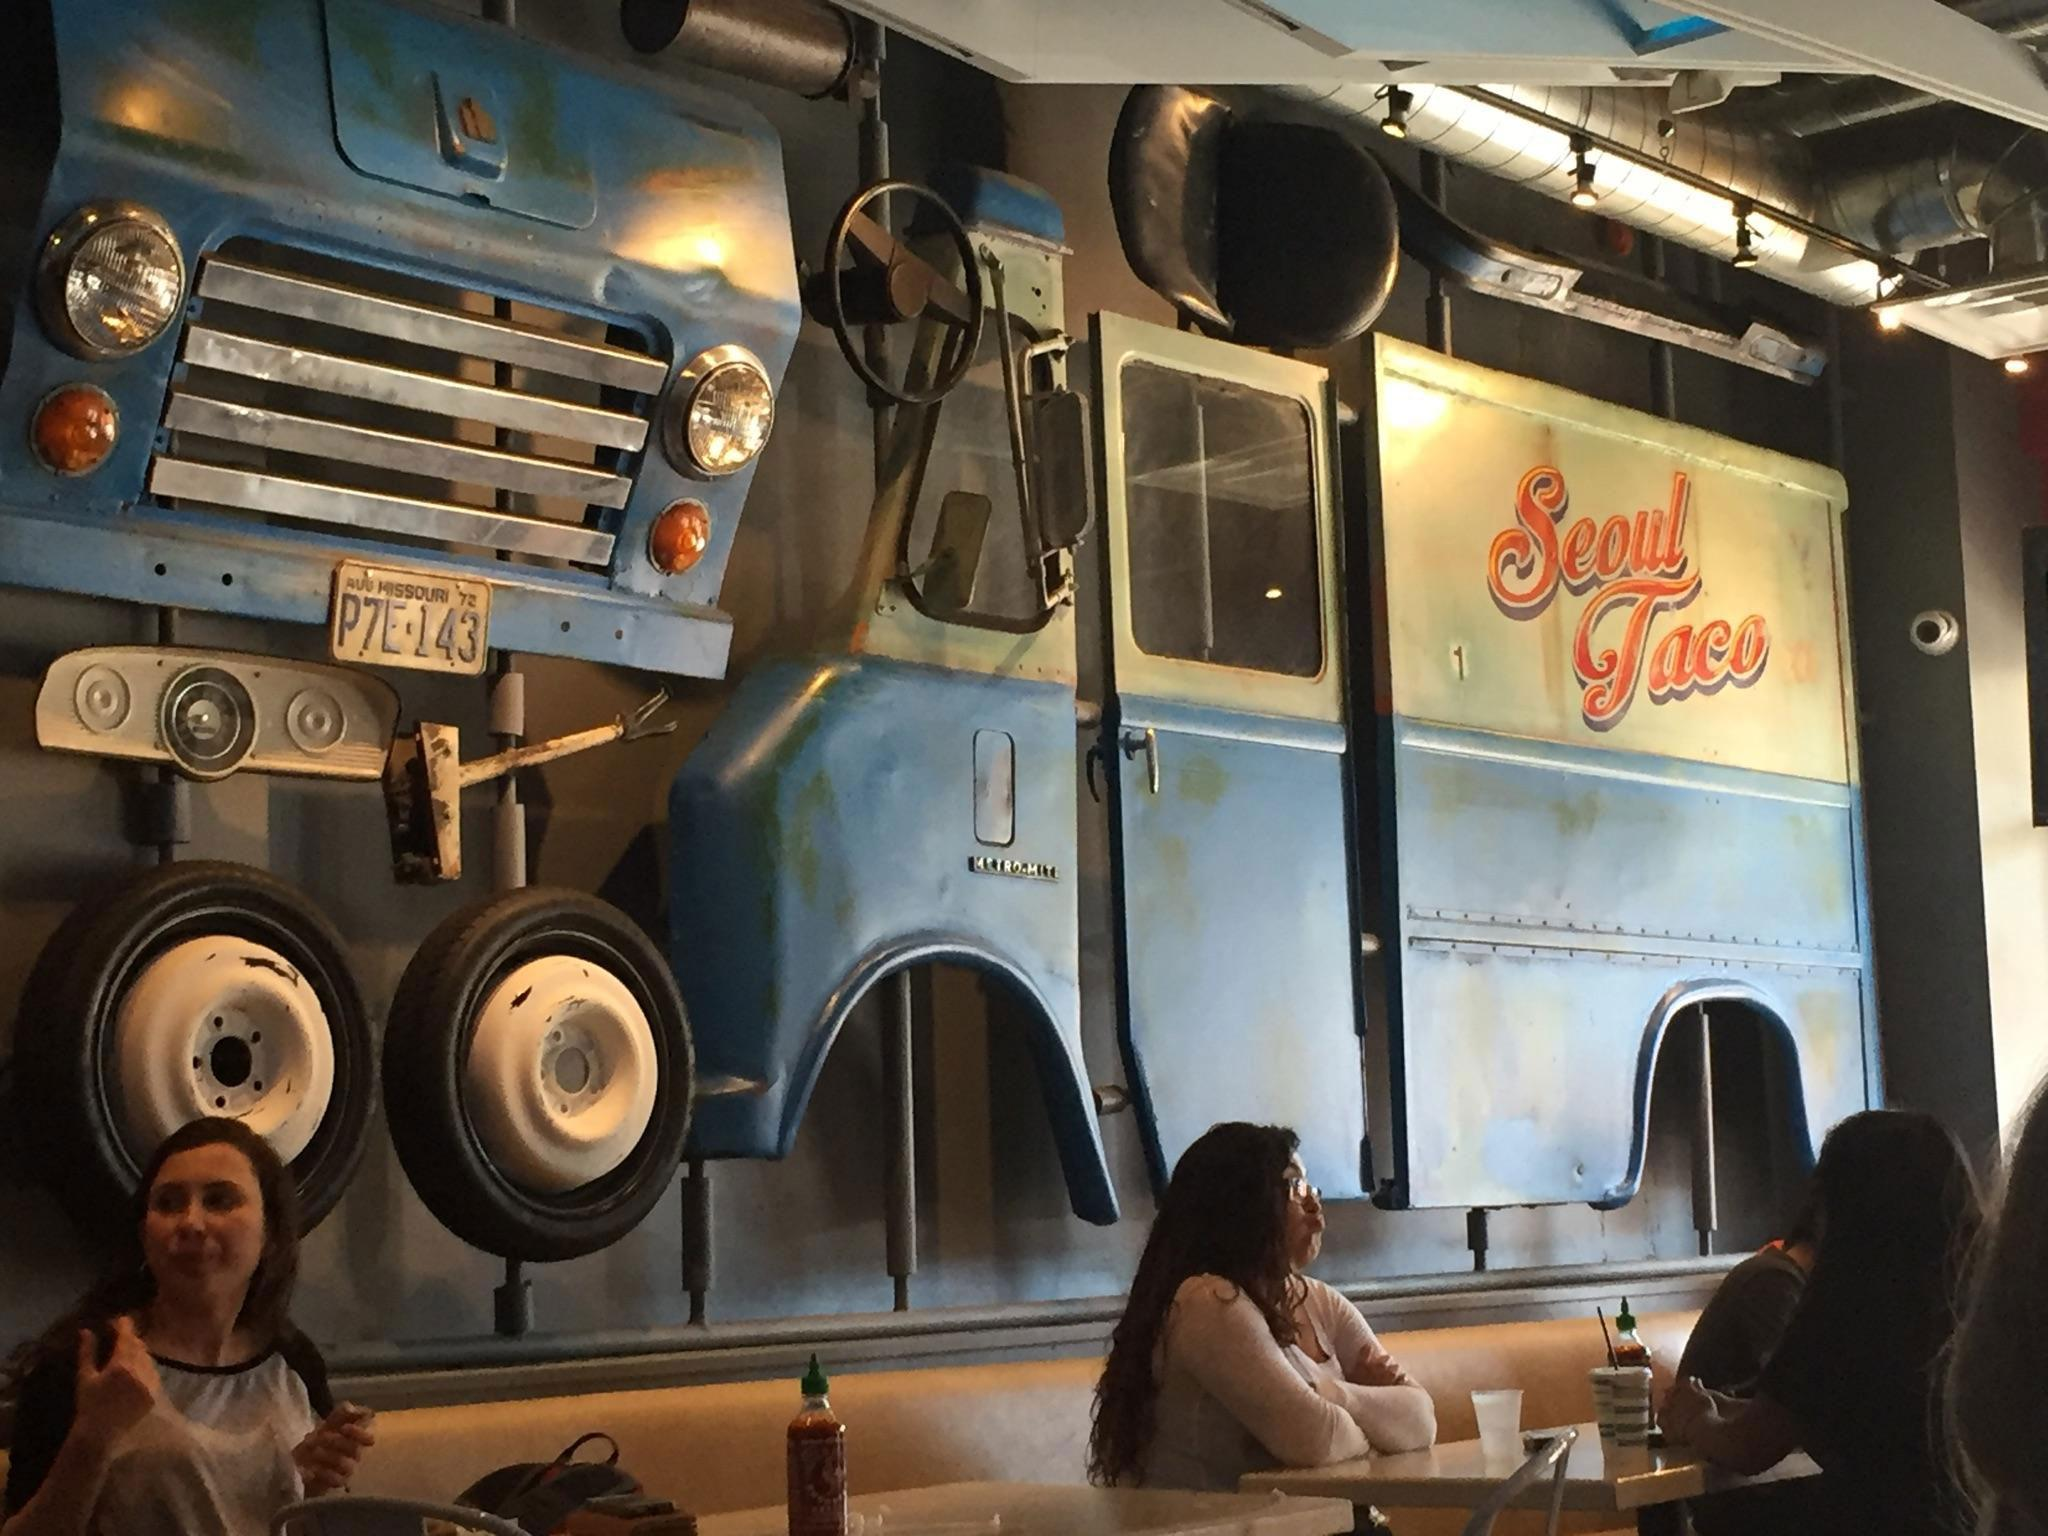 Seoul Taco began as a taco truck which was dismantled and now hangs on the wall in the restaurant. They now have another food truck and a brick and mortar restaurant in Columbia, MO.